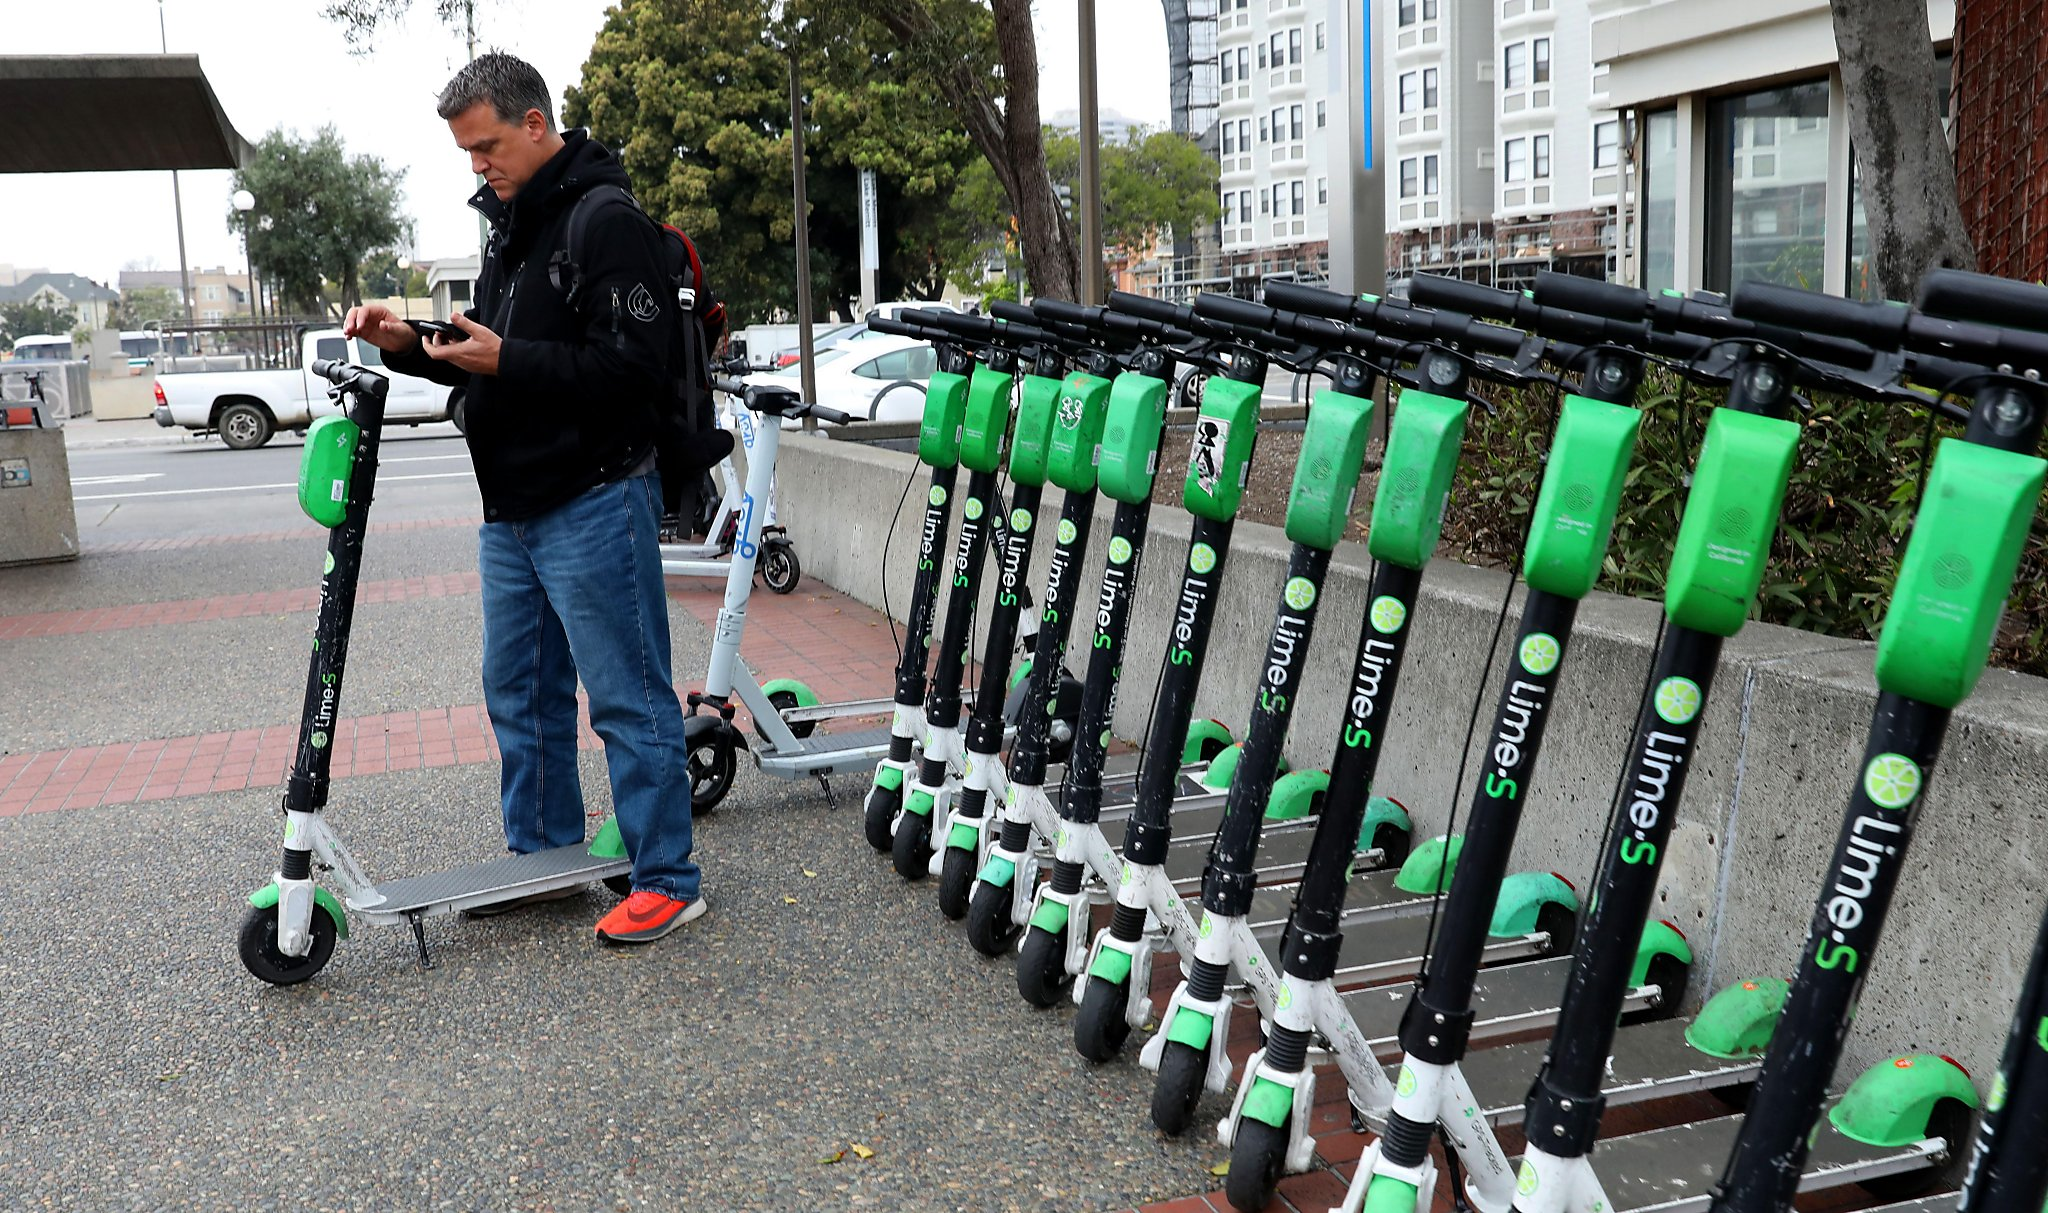 Lime adding 1,000 S.F. scooters after city approval